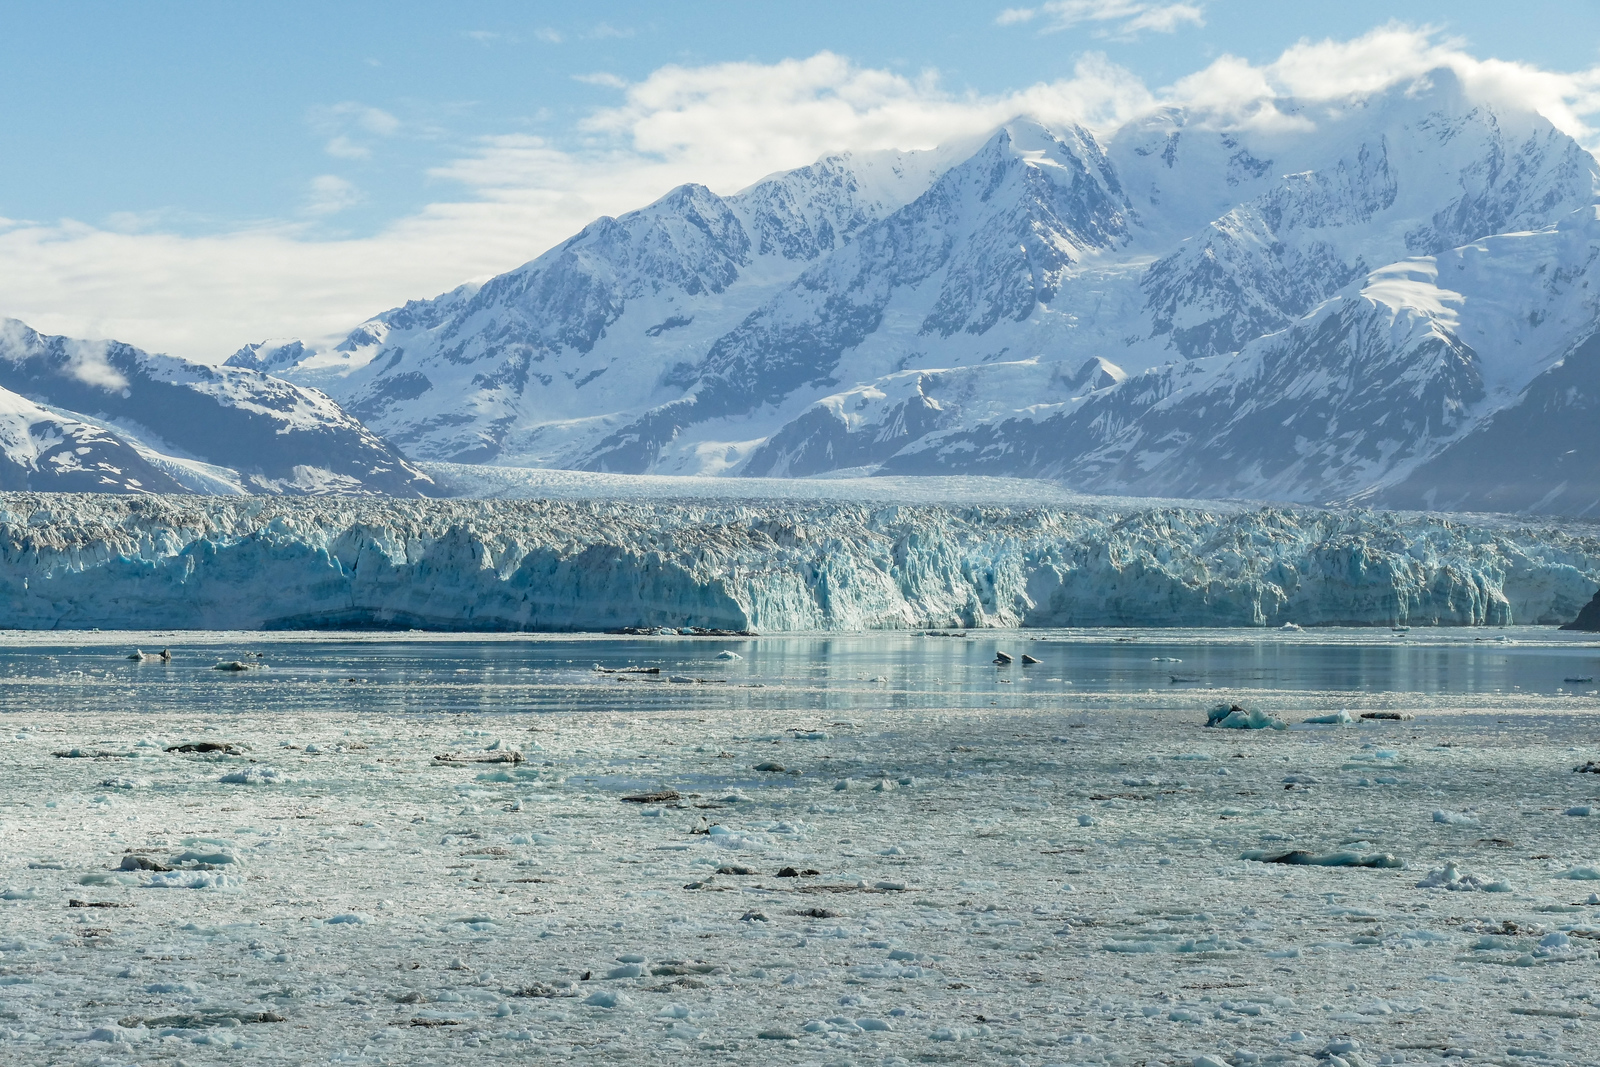 Snow capped mountains rise behind the ice face of Hubbard Glacier.